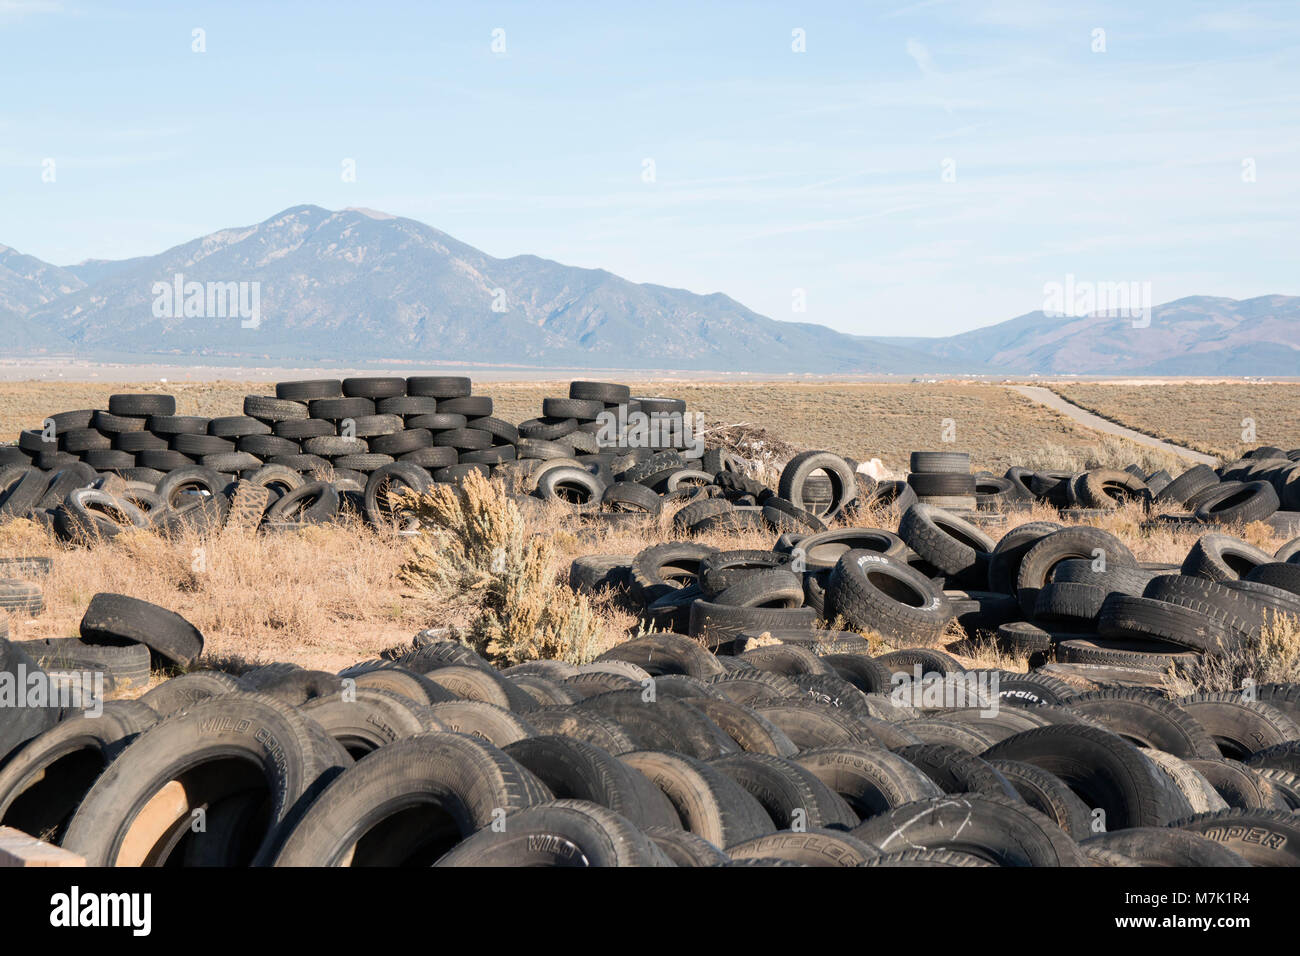 Tires waiting to become house walls in the New Mexico high desert. - Stock Image